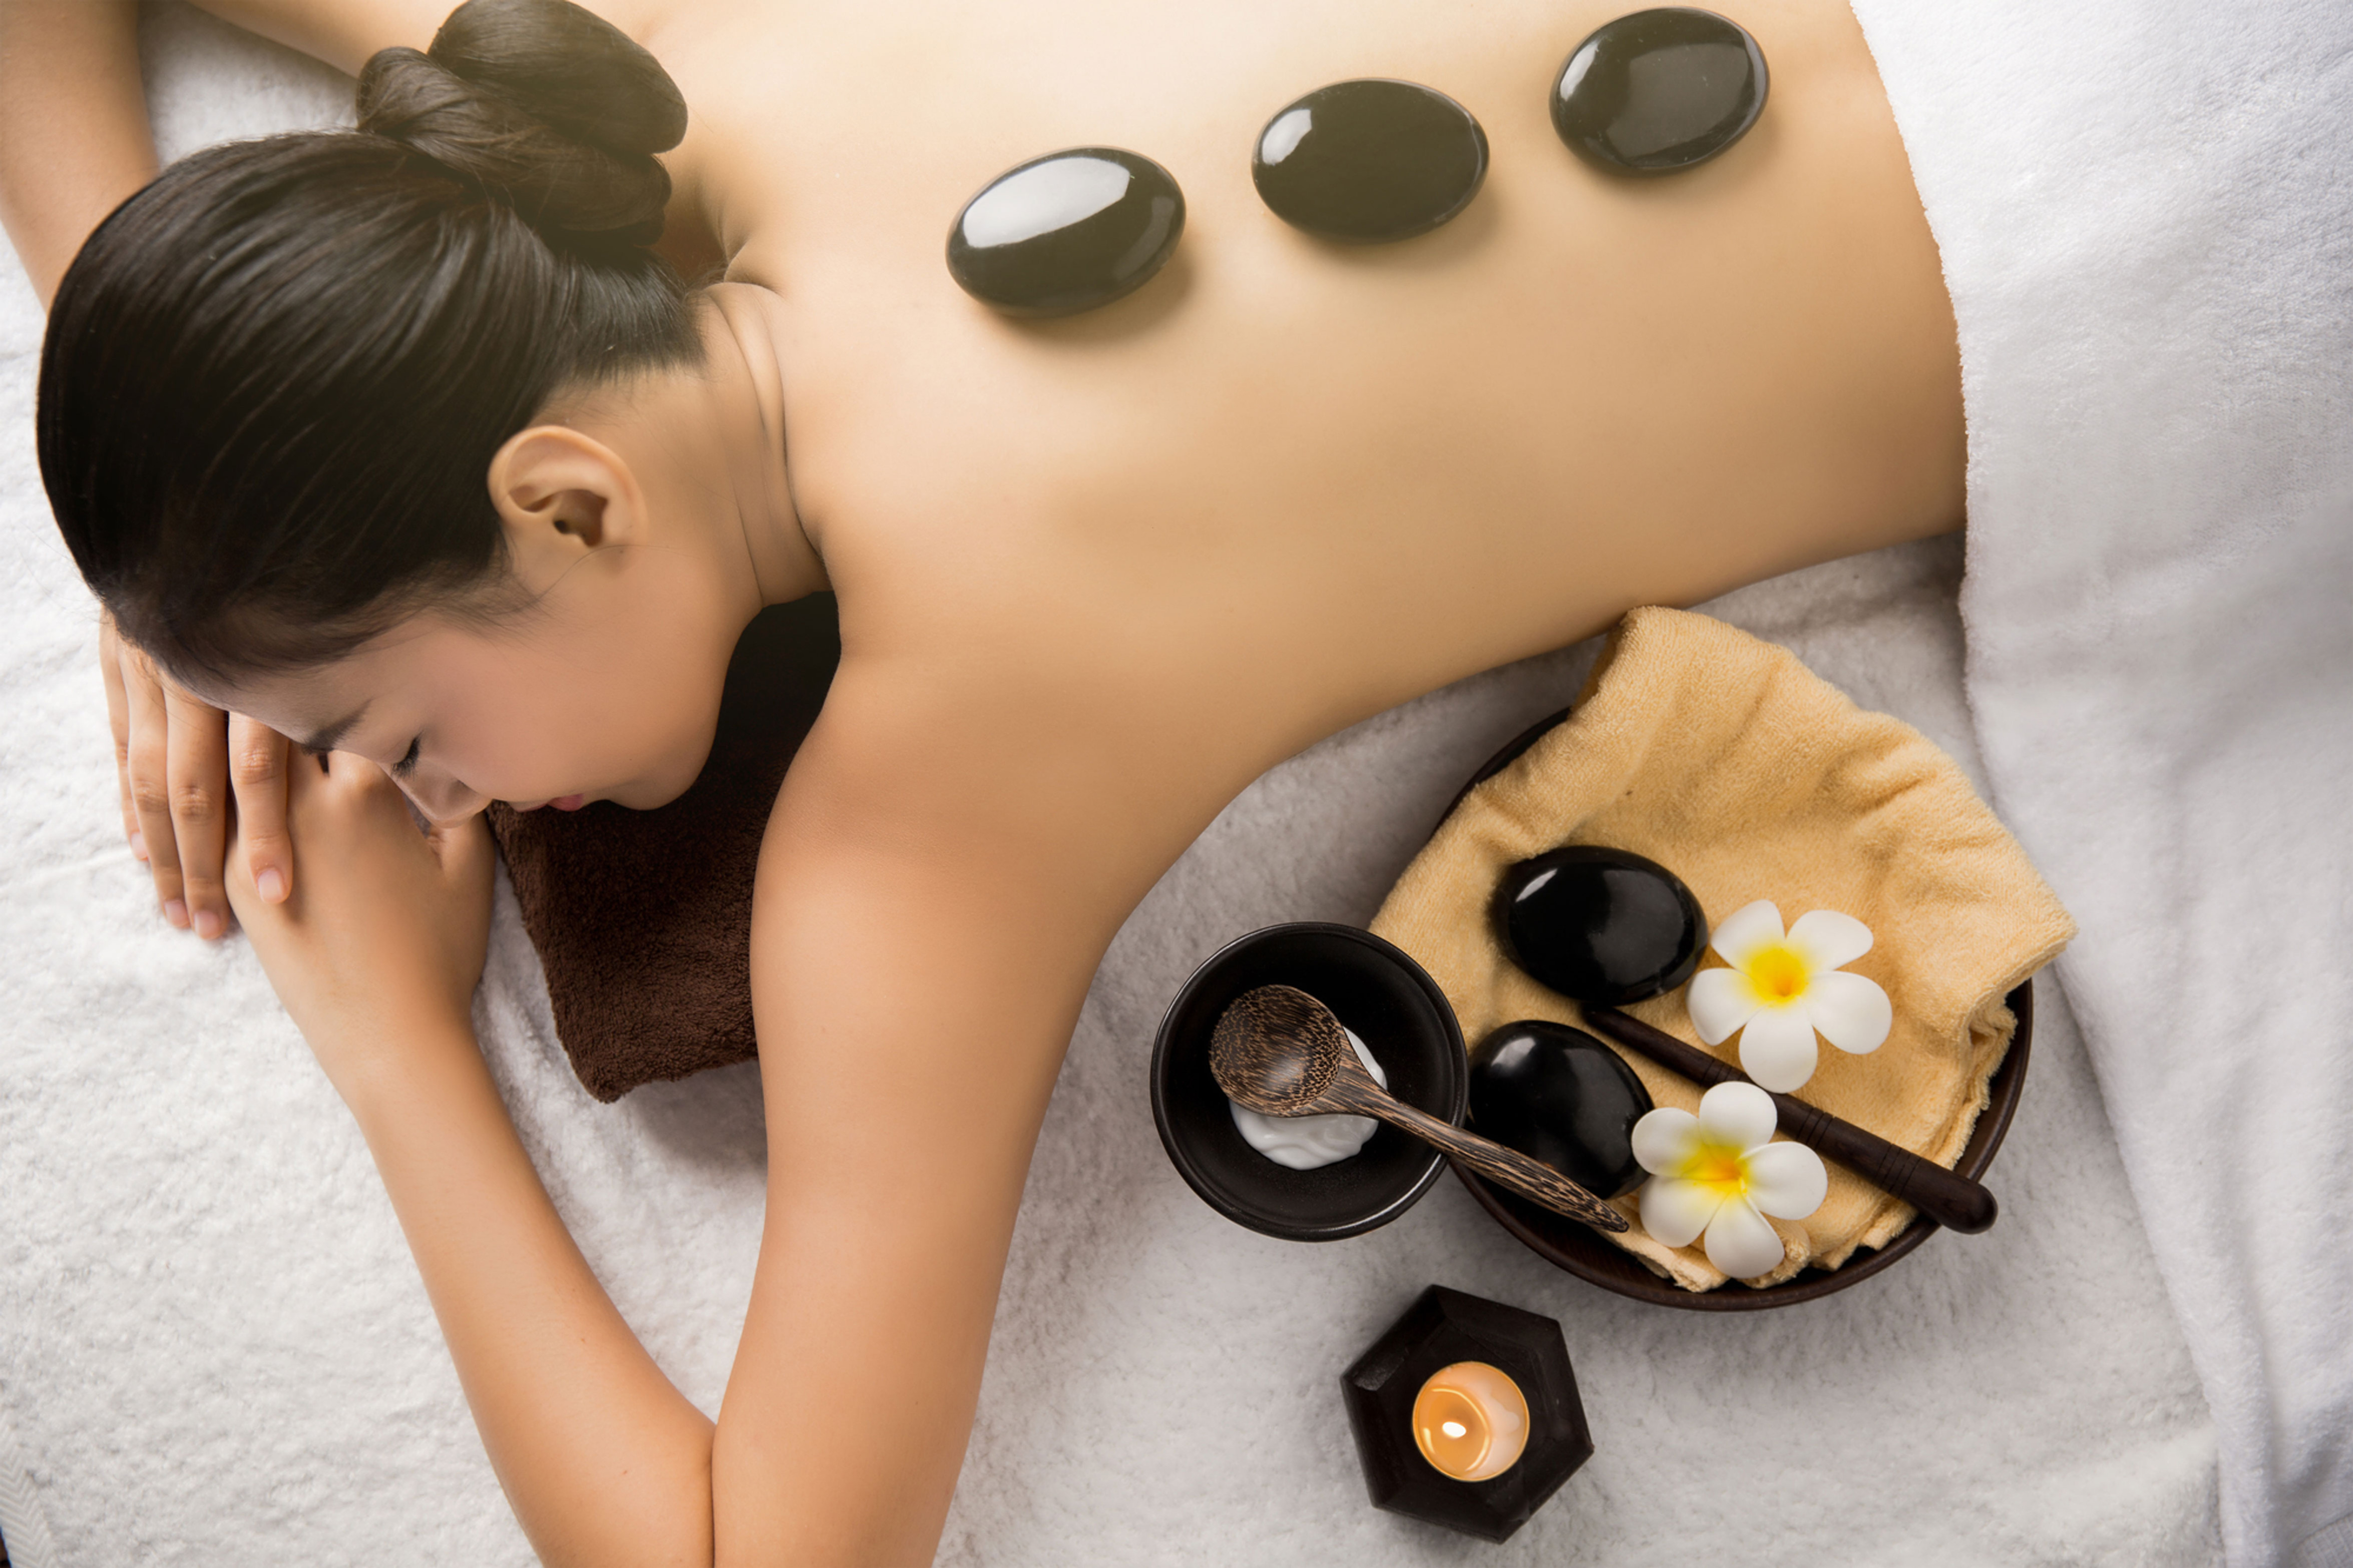 NEW £100 SPA Treatment In Our New SPA